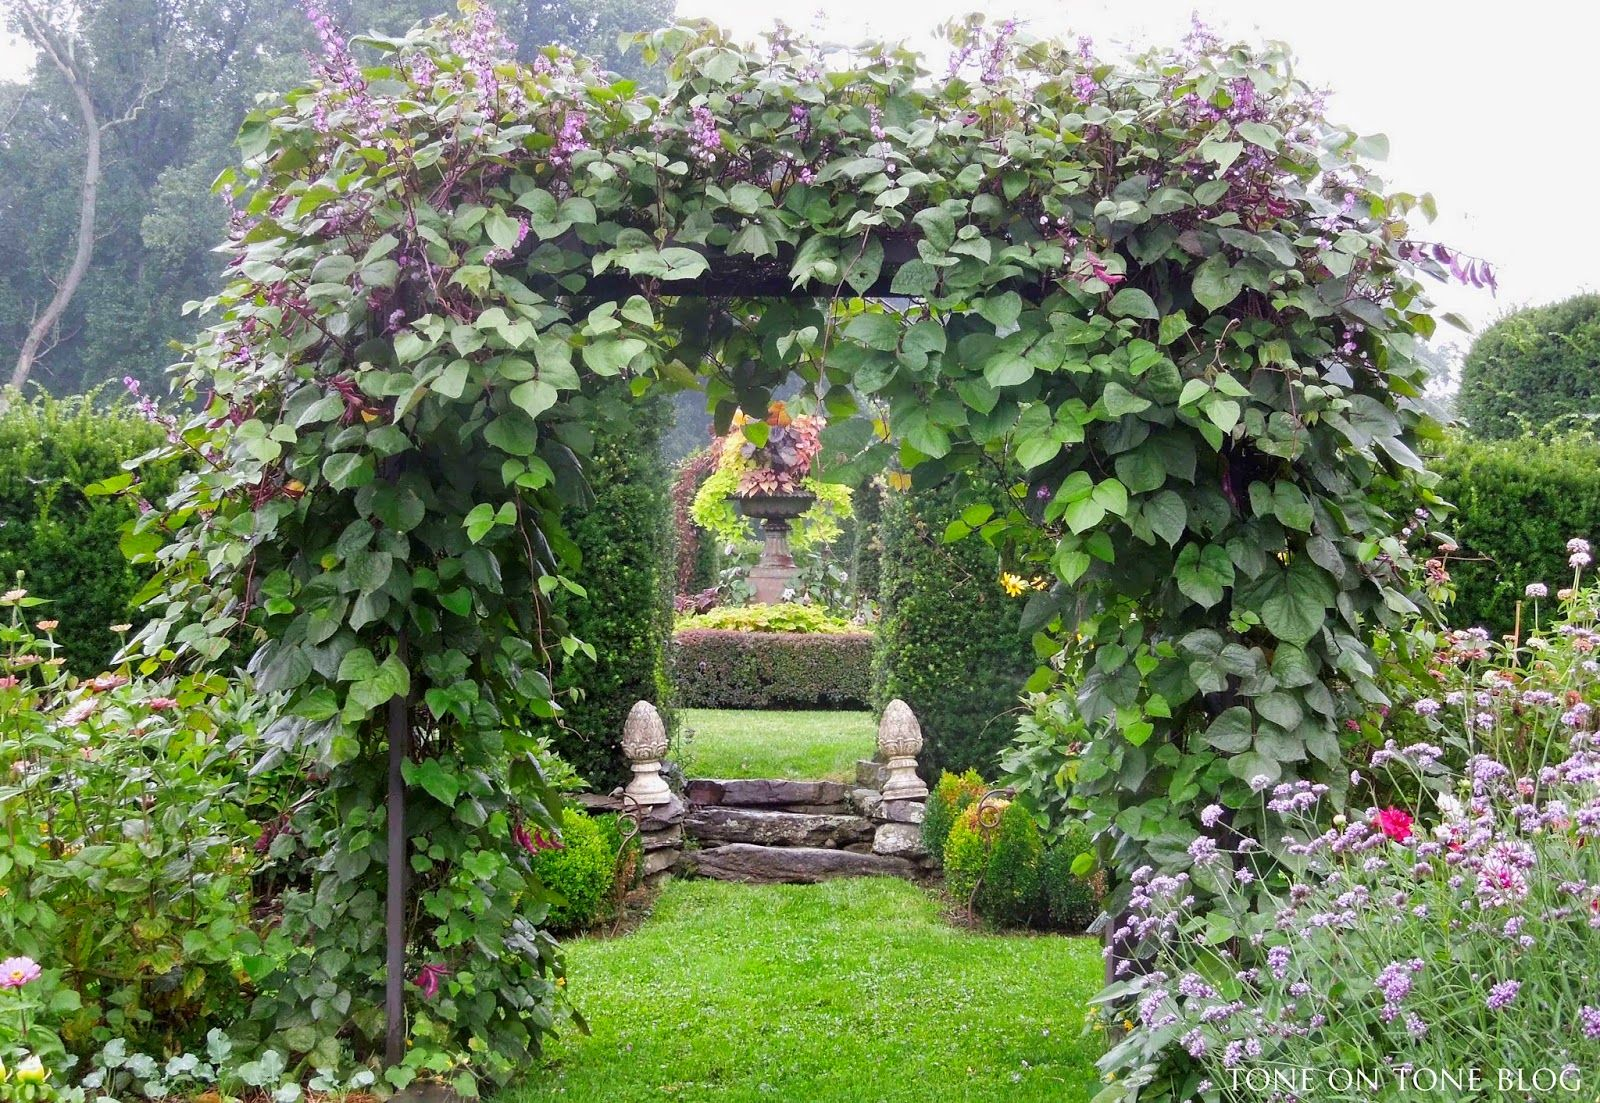 Tone on Tone: Halcyon Moments in the Garden